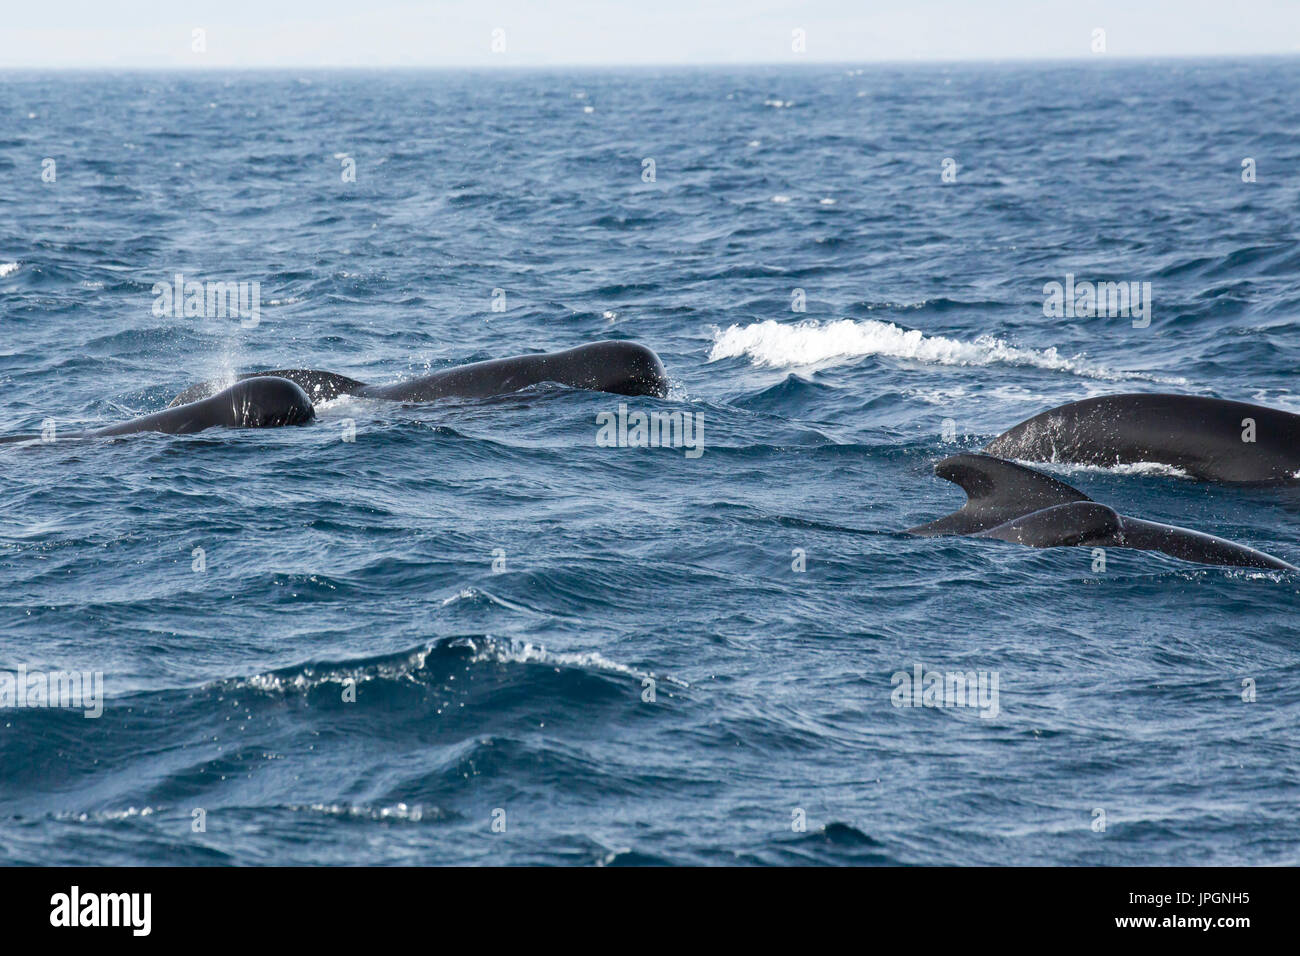 Long-finned Pilot Whales (Globicephala melas), a type of large dolphin, surfacing - Stock Image